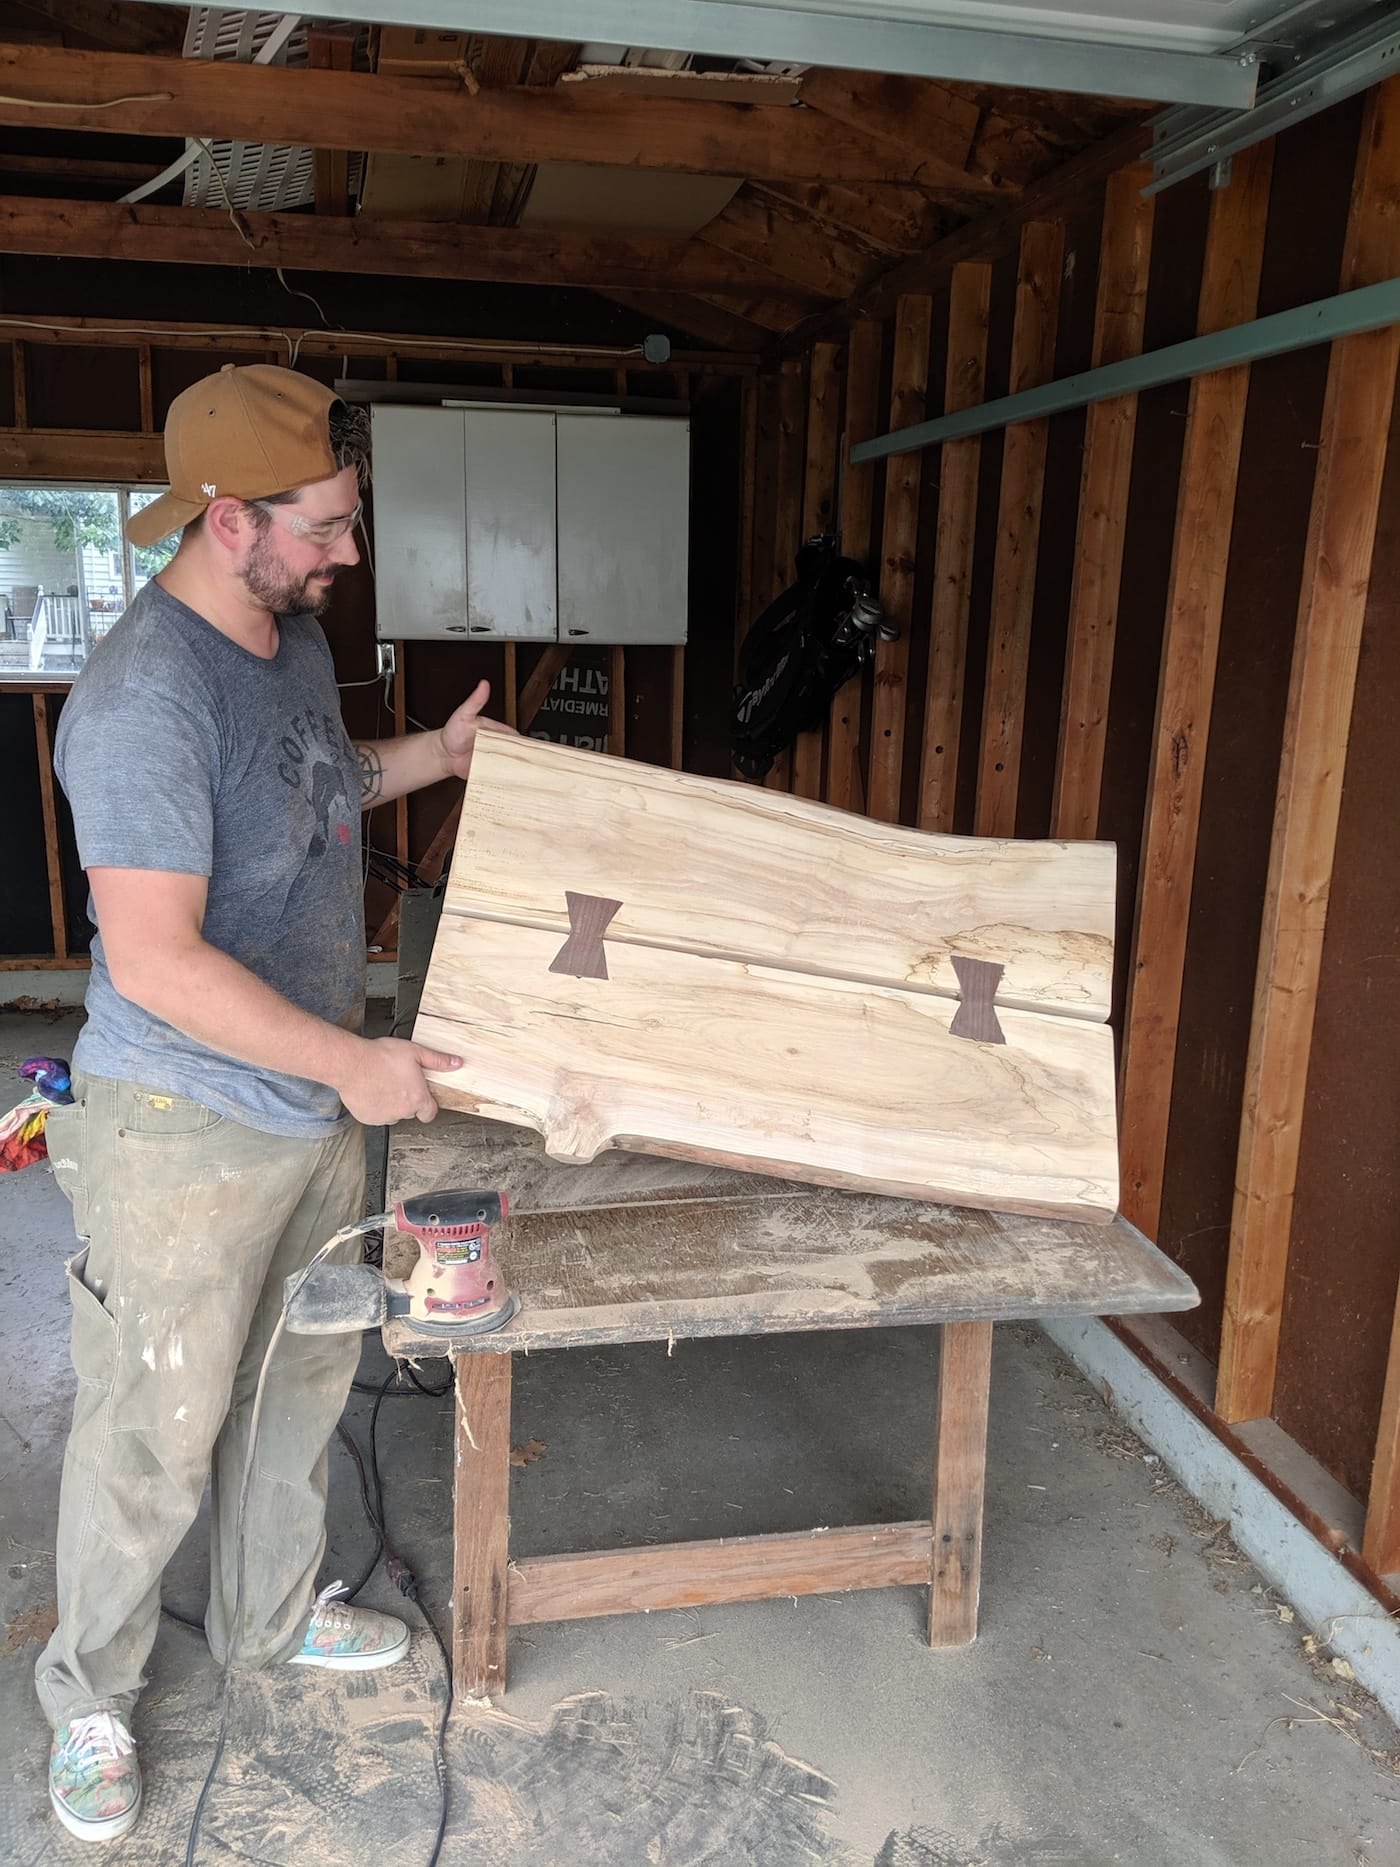 Bud showing off his woodwork